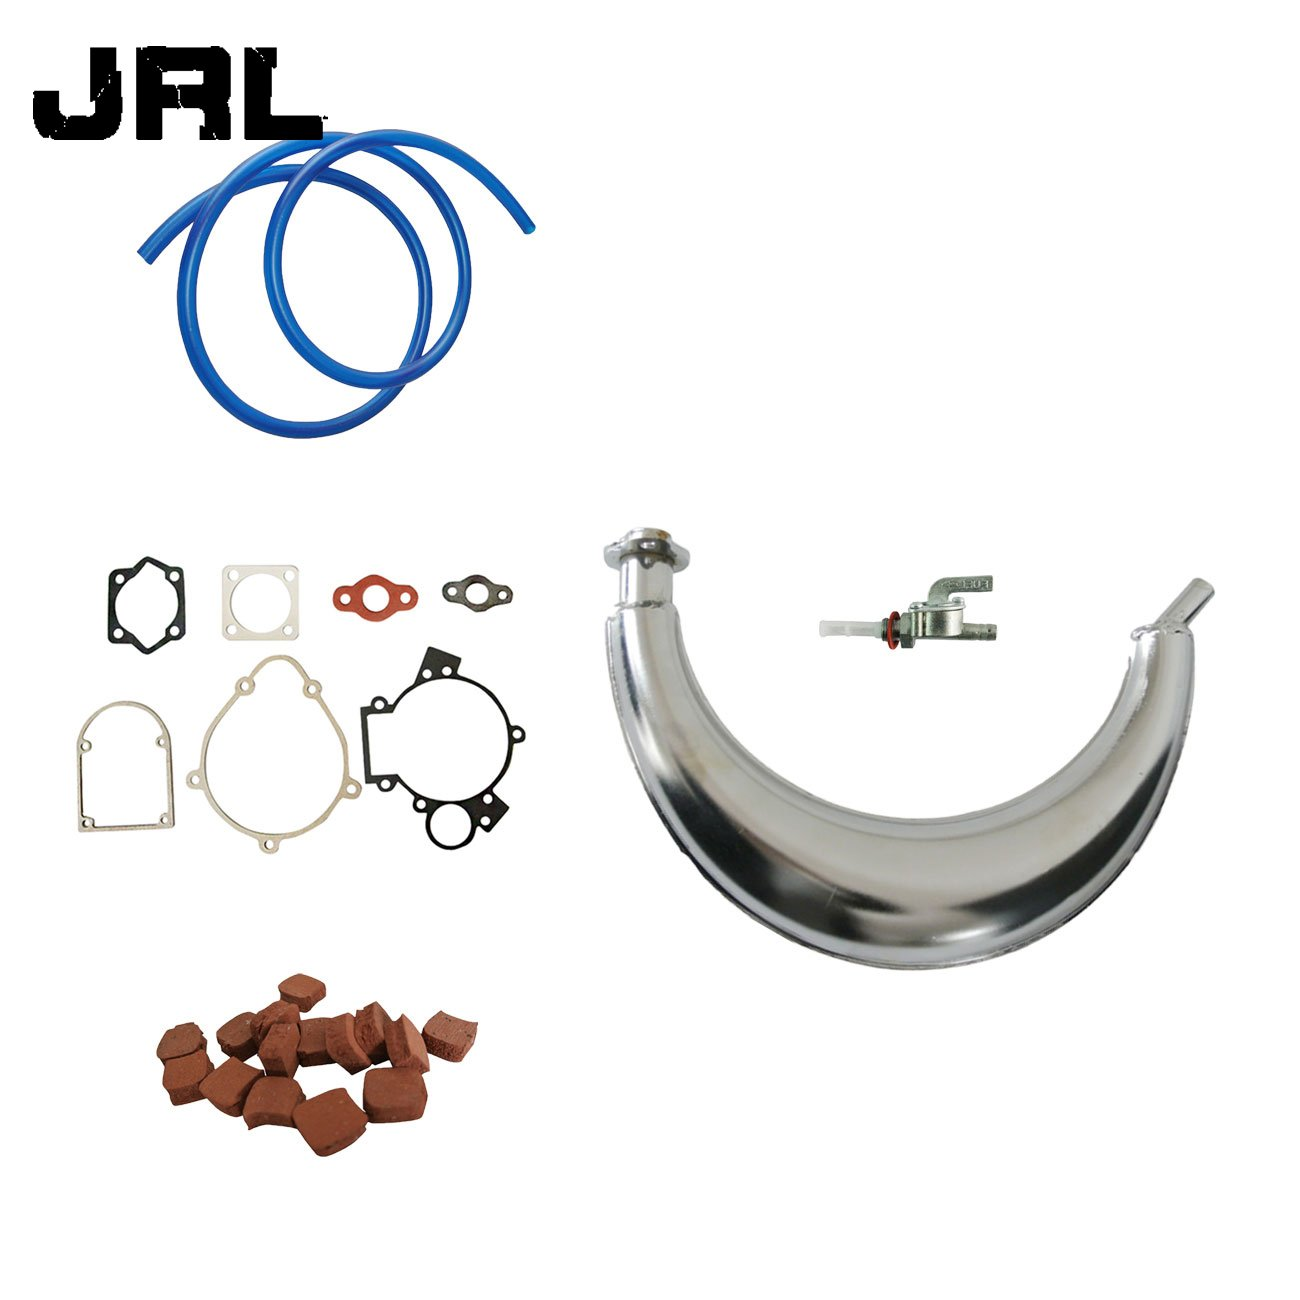 JRL Muffler Exhaust/&15pcs Square Clutch Pads For 66cc 80cc Engine Motorized Bike